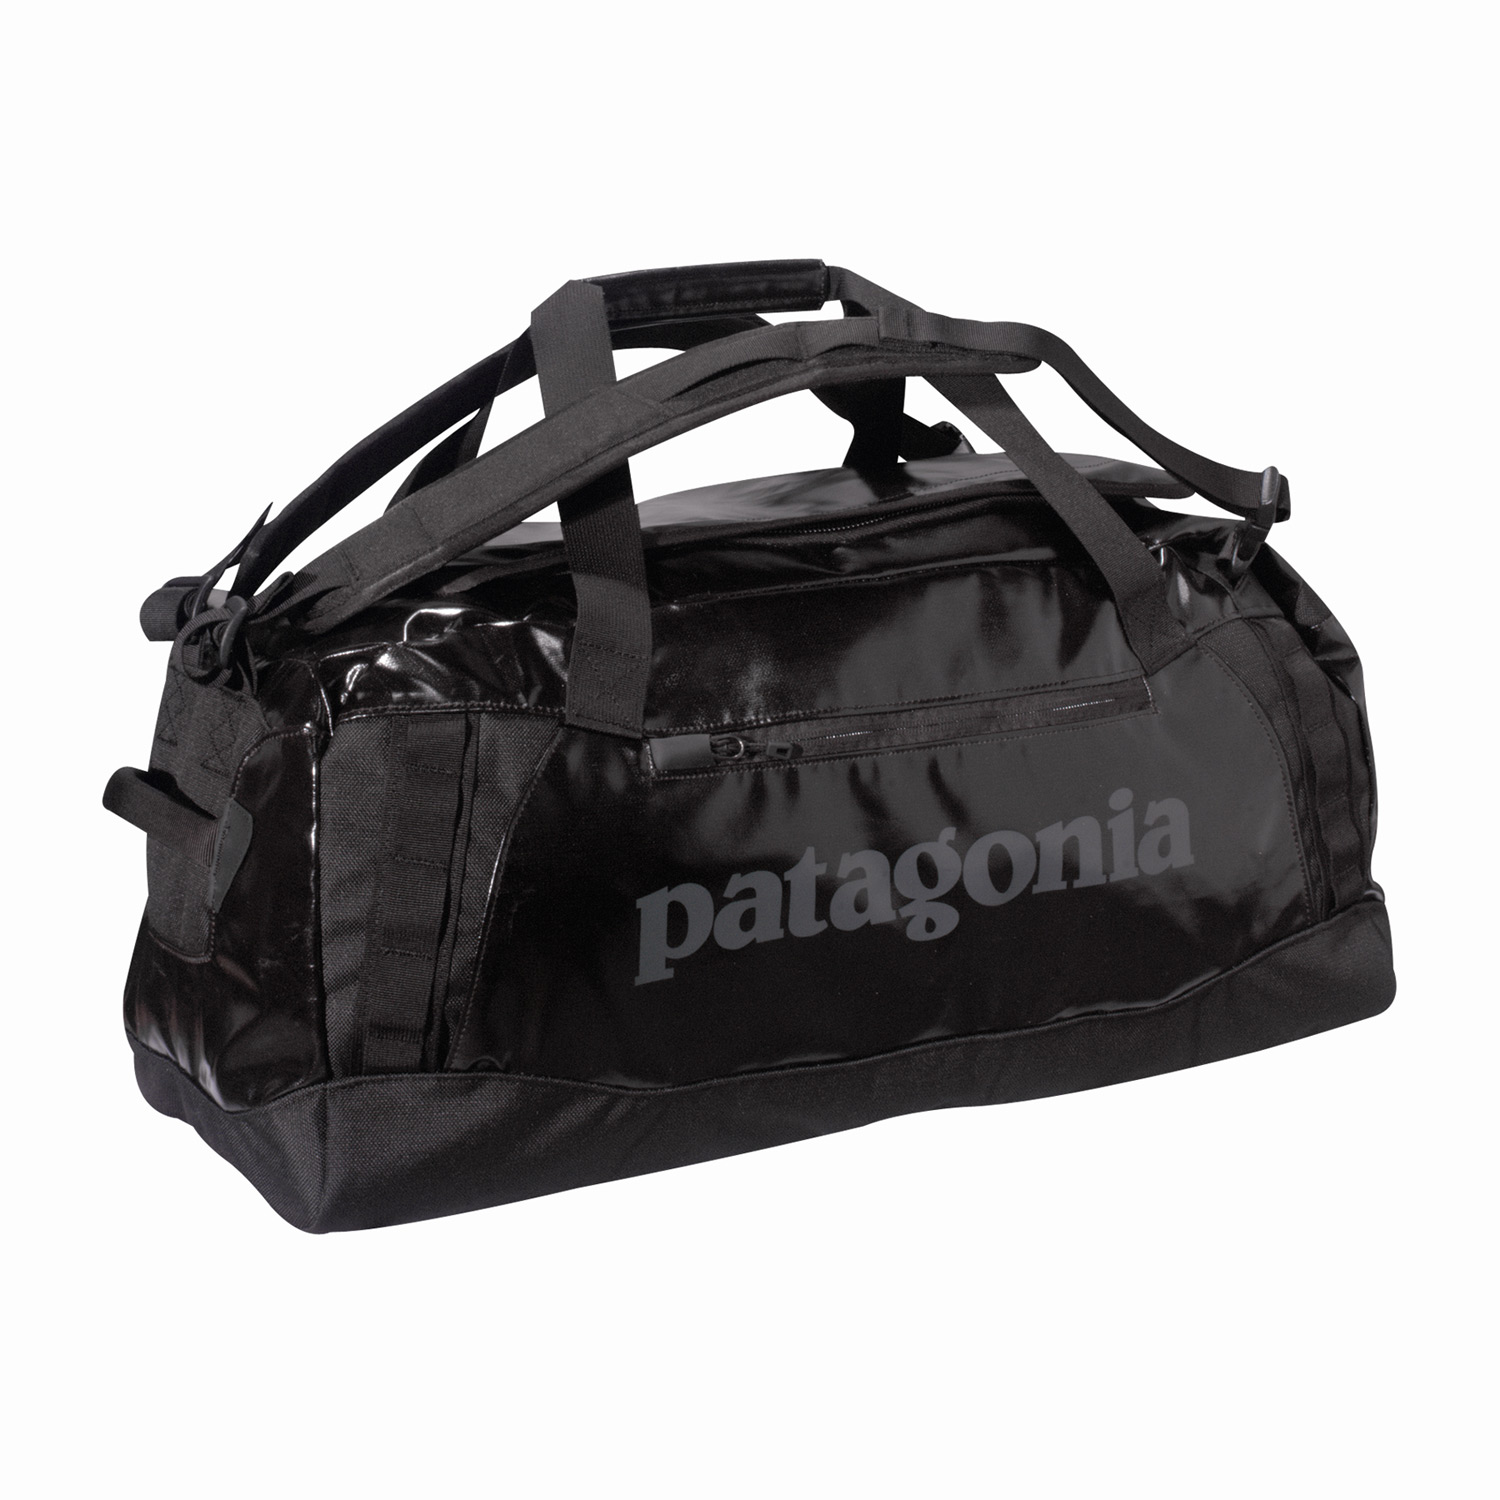 Entertainment A super-durable, extremely utilitarian, water-resistant duffel designed for bigger trips to faraway placesKey Features of the Patagonia Black Hole 90L Duffle Bag: Waterproof fabric with sewn seams protects your gear in wet conditions Carry with handle or padded and adjustable shoulder straps; two haul handles and four corner-mounted webbing daisy chains facilitate hauling and tying down big loads U-Shaped lid provides easy access to the main compartment; zippered exterior pocket, two zippered internal mesh pockets Bottom padded with foam to protect contents 90 L / 5492 cu in (2 lbs 10 oz  1191 g fabric: Body/Base: 14.7 oz 1,200-denier polyester (50% solution dyed  with TPU film laminate and a DWR (durable water-repellent  finish - $111.95